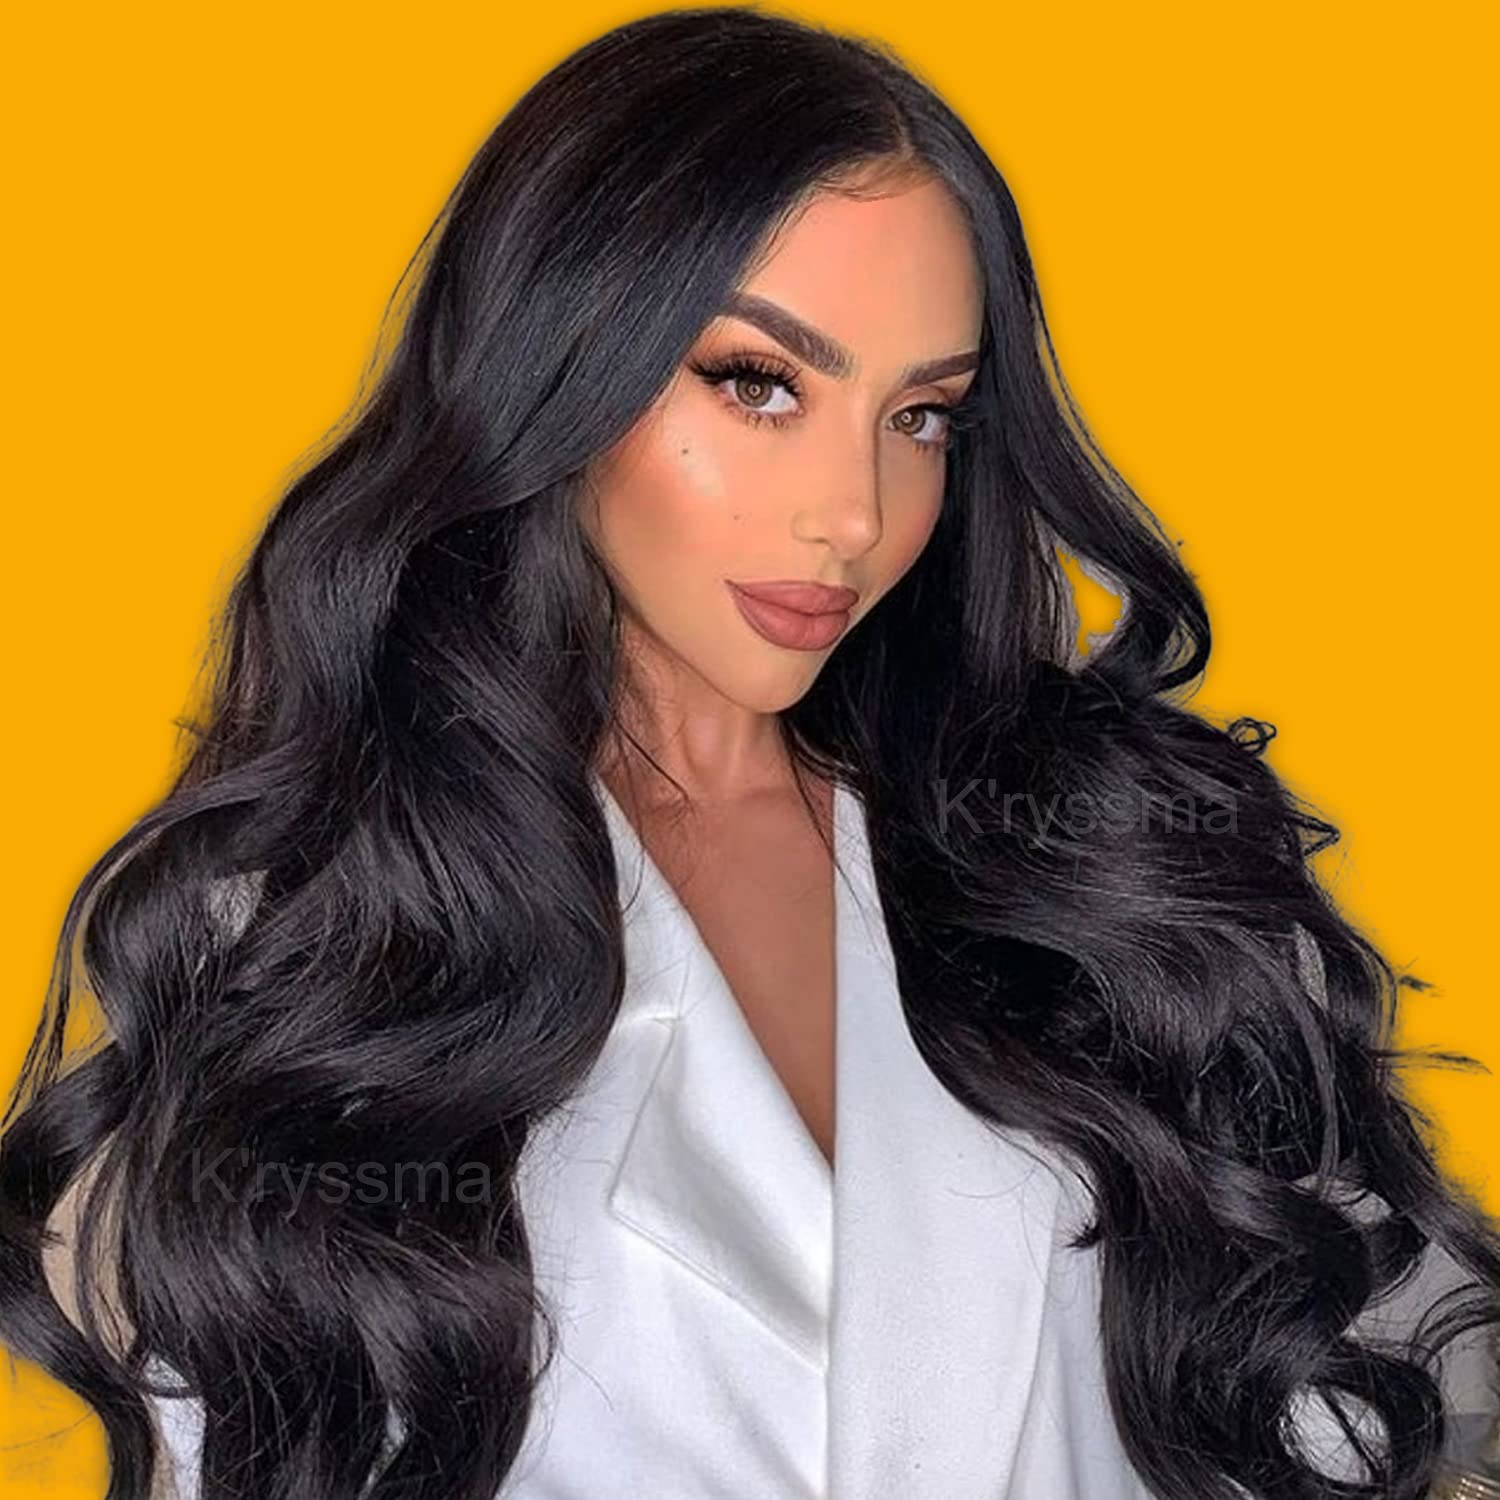 Lace Seattle Mall Front Wigs for Now free shipping Women Long Black Wavy Glueless Synthetic Wig